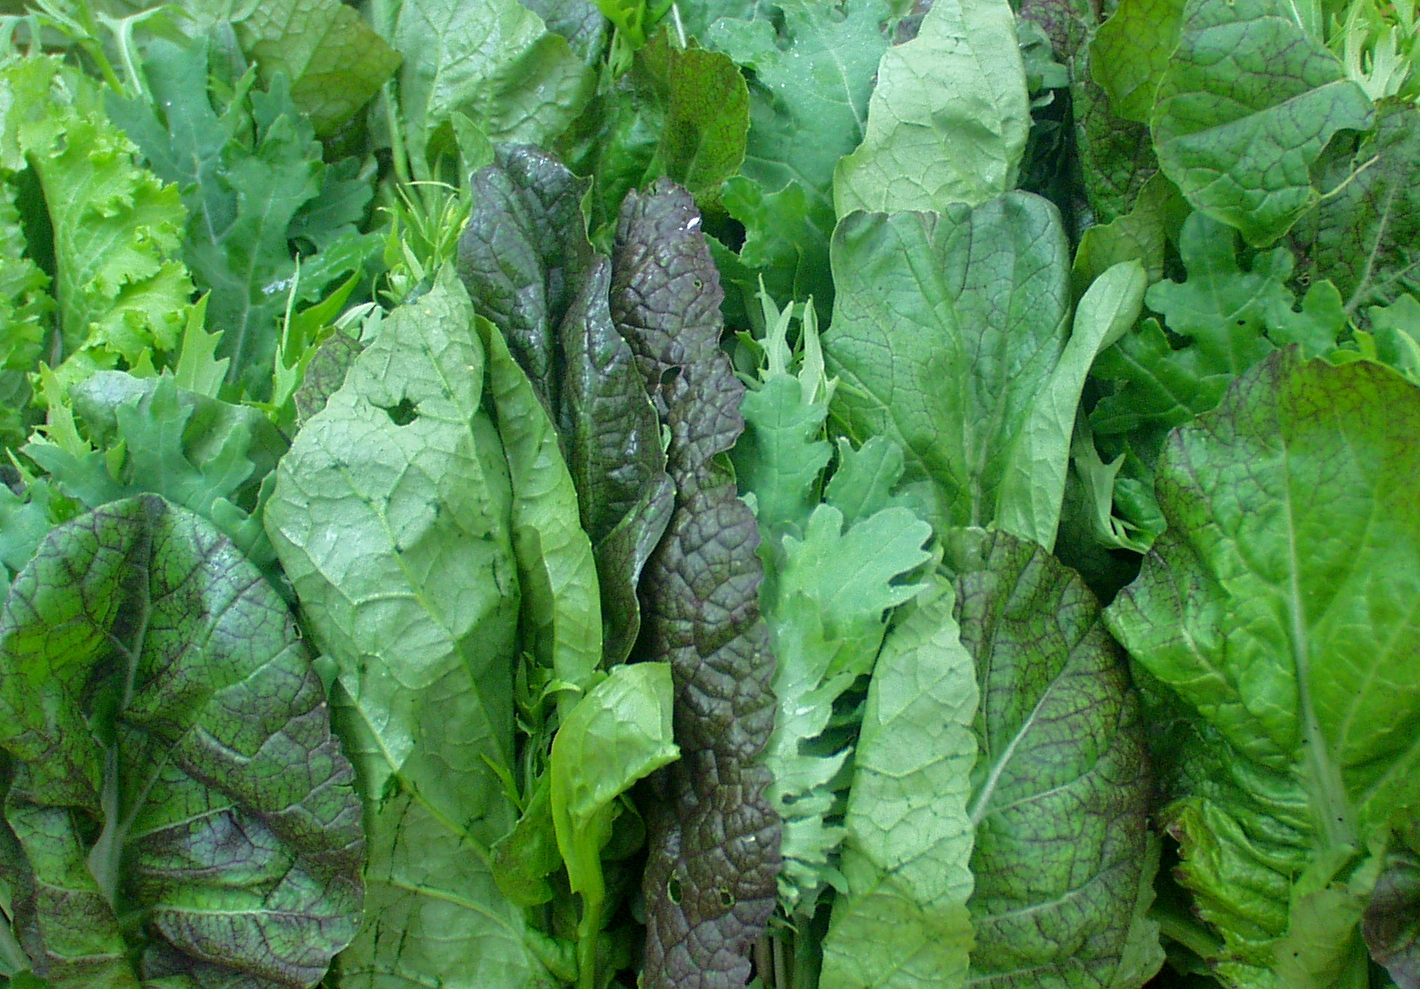 Beautiful bundles of braising greens, including mustards and kales, from Port Townsend's Collinwood Farms. Photo copyright 2009 by Zachary D. Lyons.